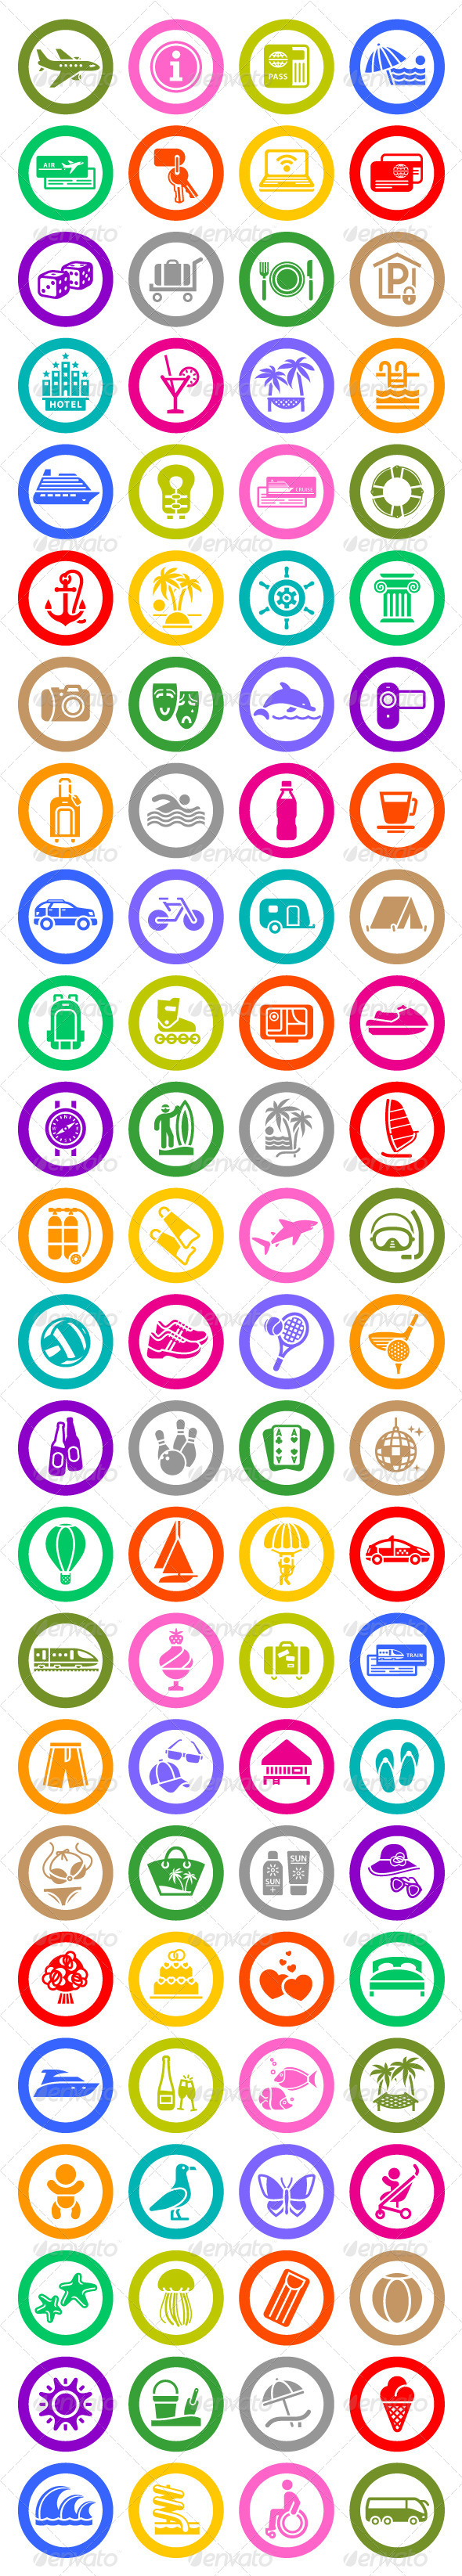 GraphicRiver 96 pcs Vacation Icons Travel Symbols 4083370